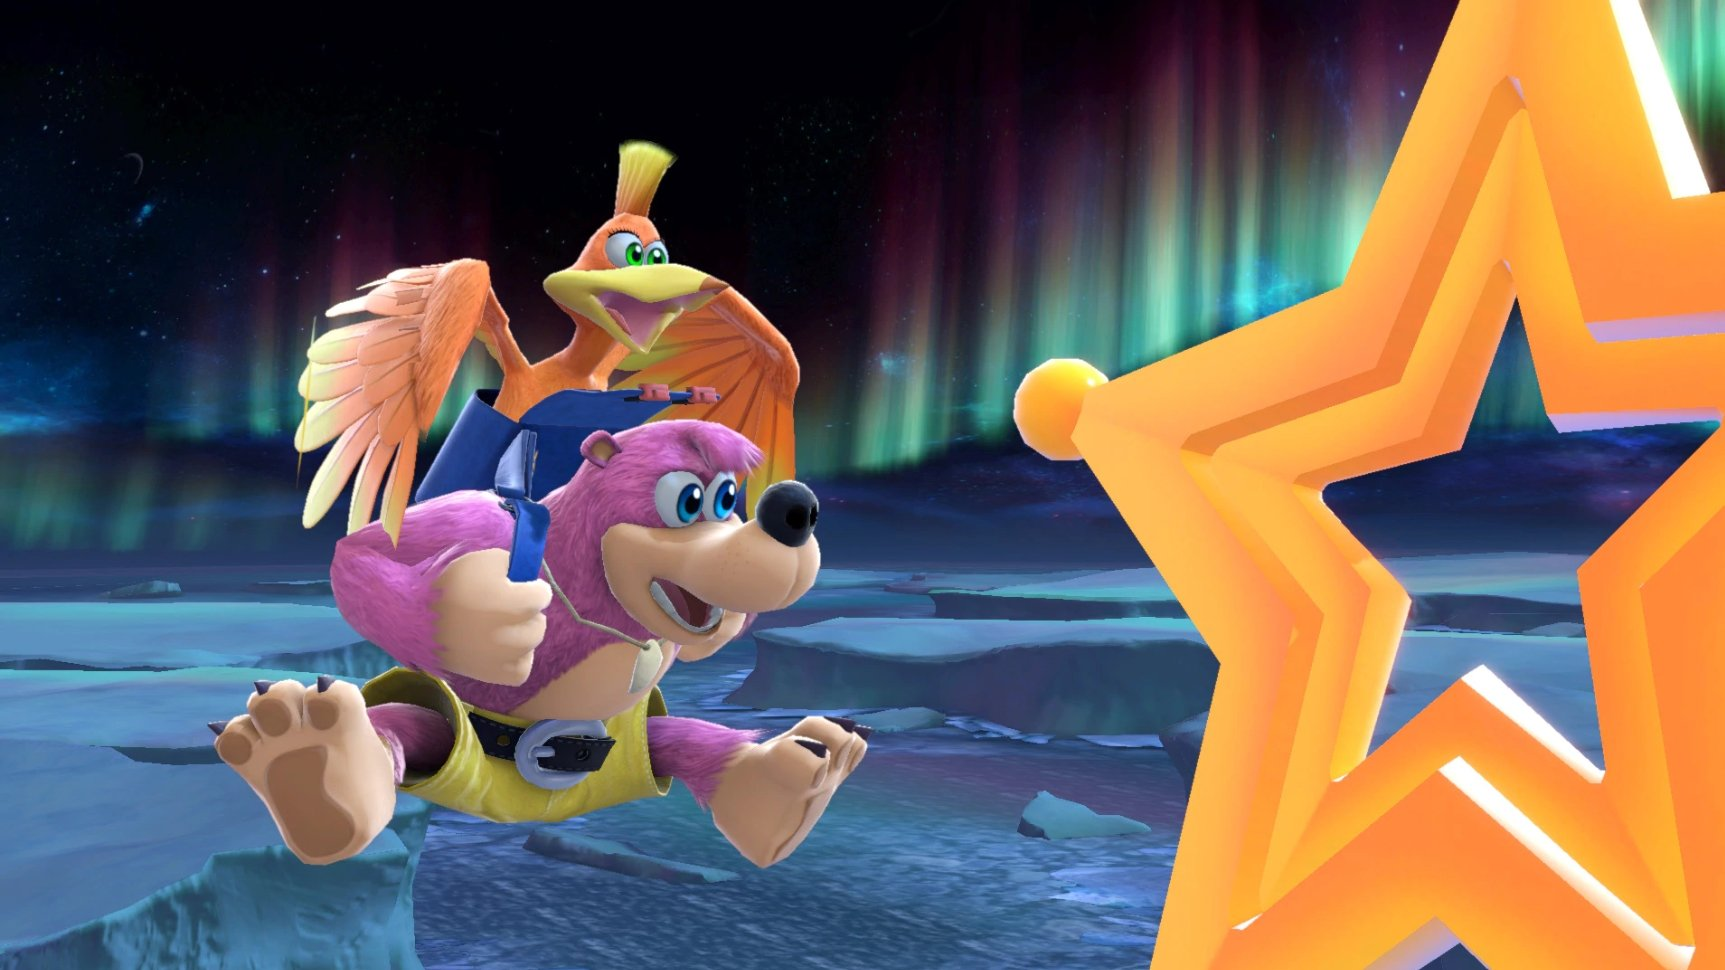 Banjo-Kazooie full moveset in Smash Ultimate